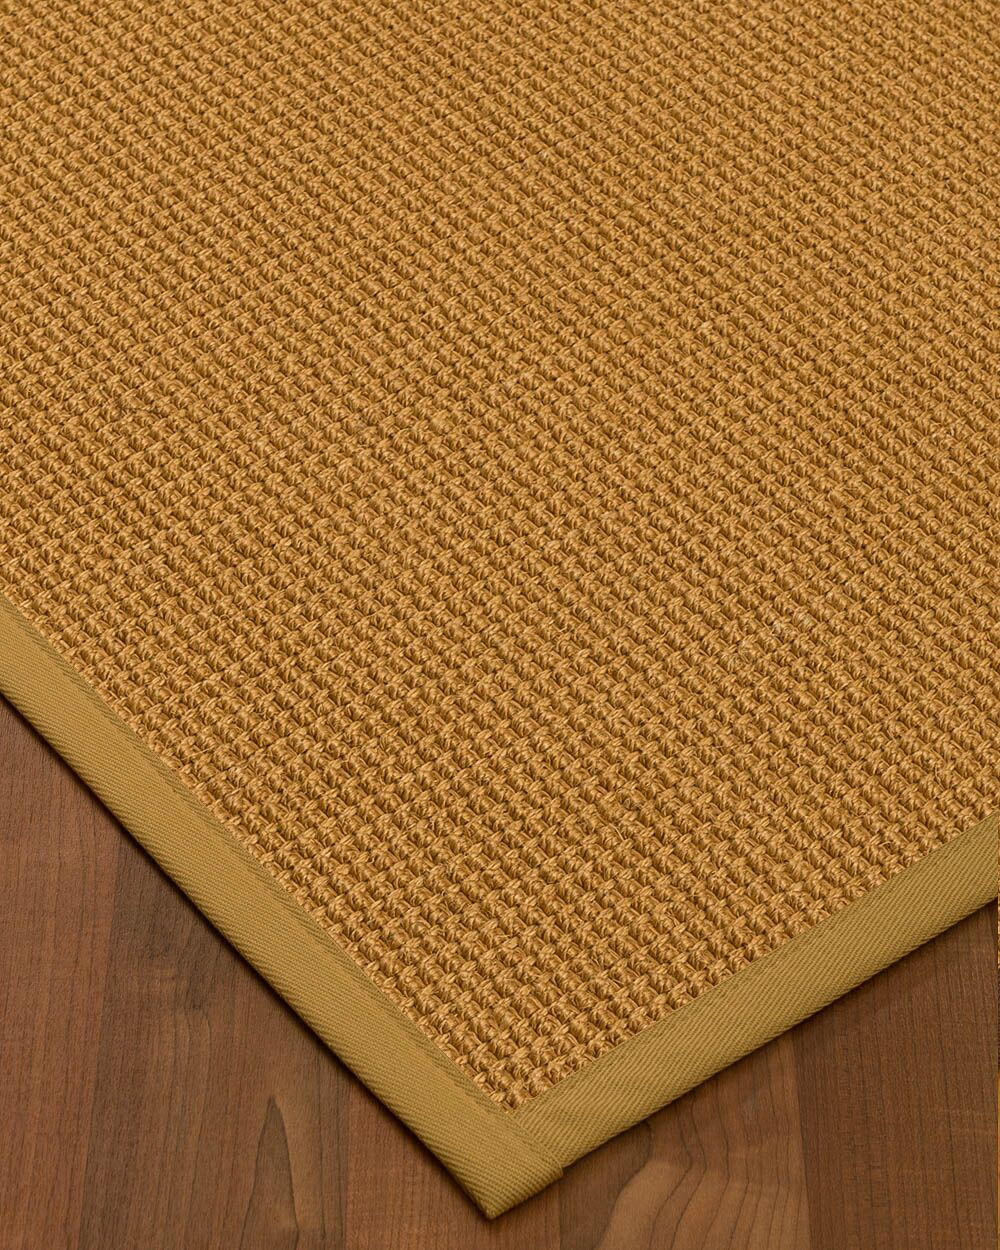 Aula Border Hand-Woven Brown Area Rug Rug Size: Rectangle 5' x 8', Rug Pad Included: Yes